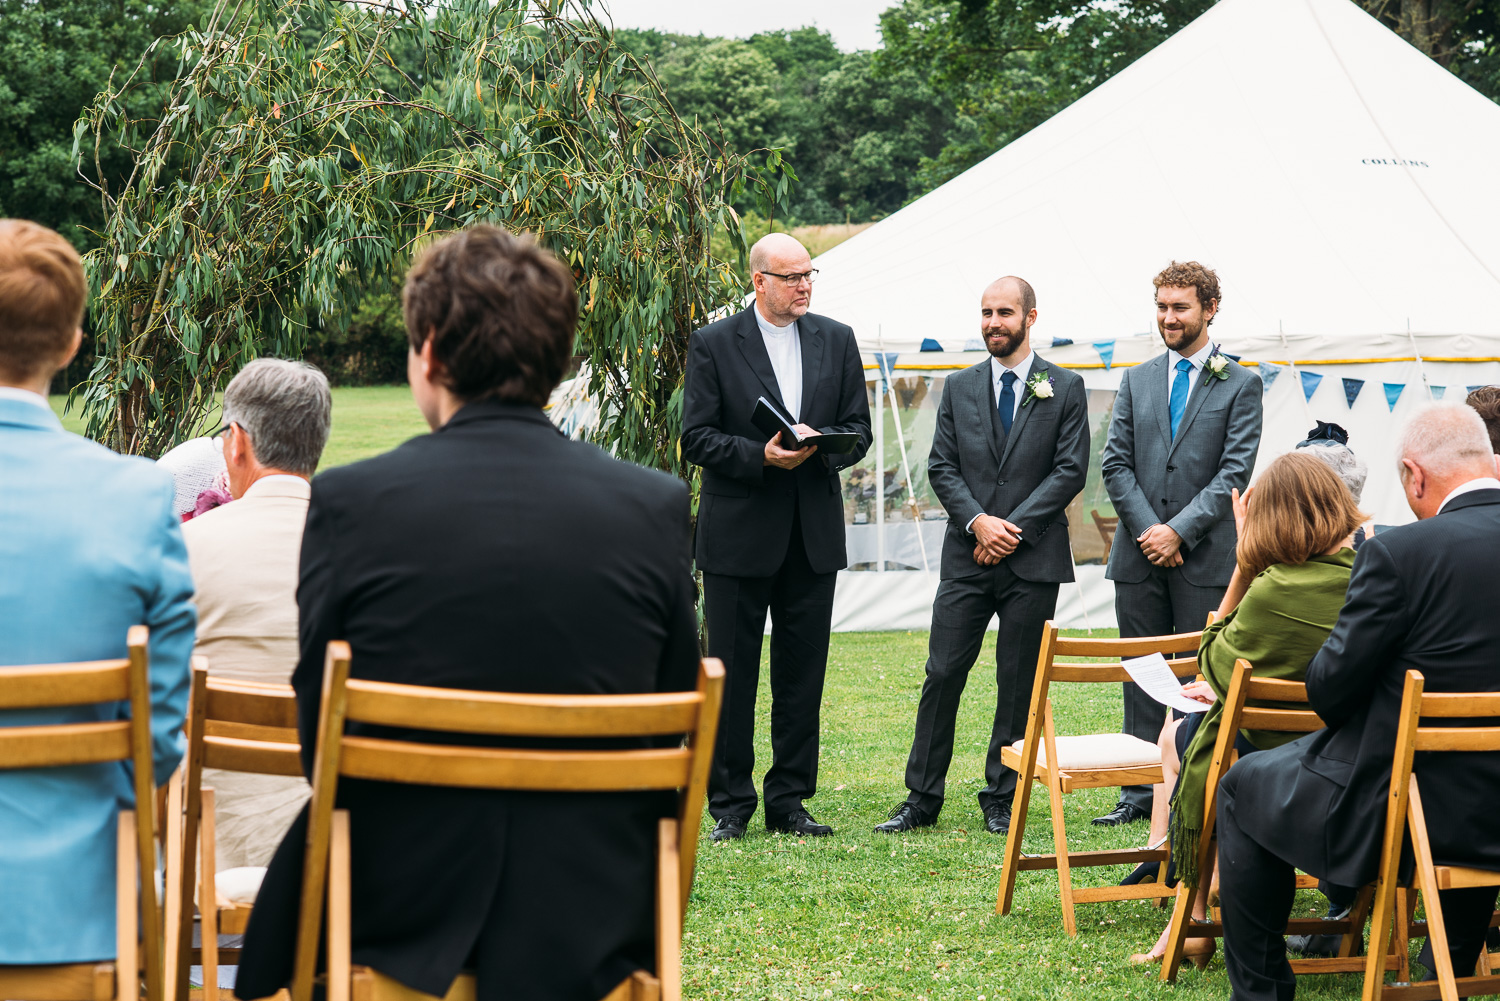 back-garden-wedding-14.jpg